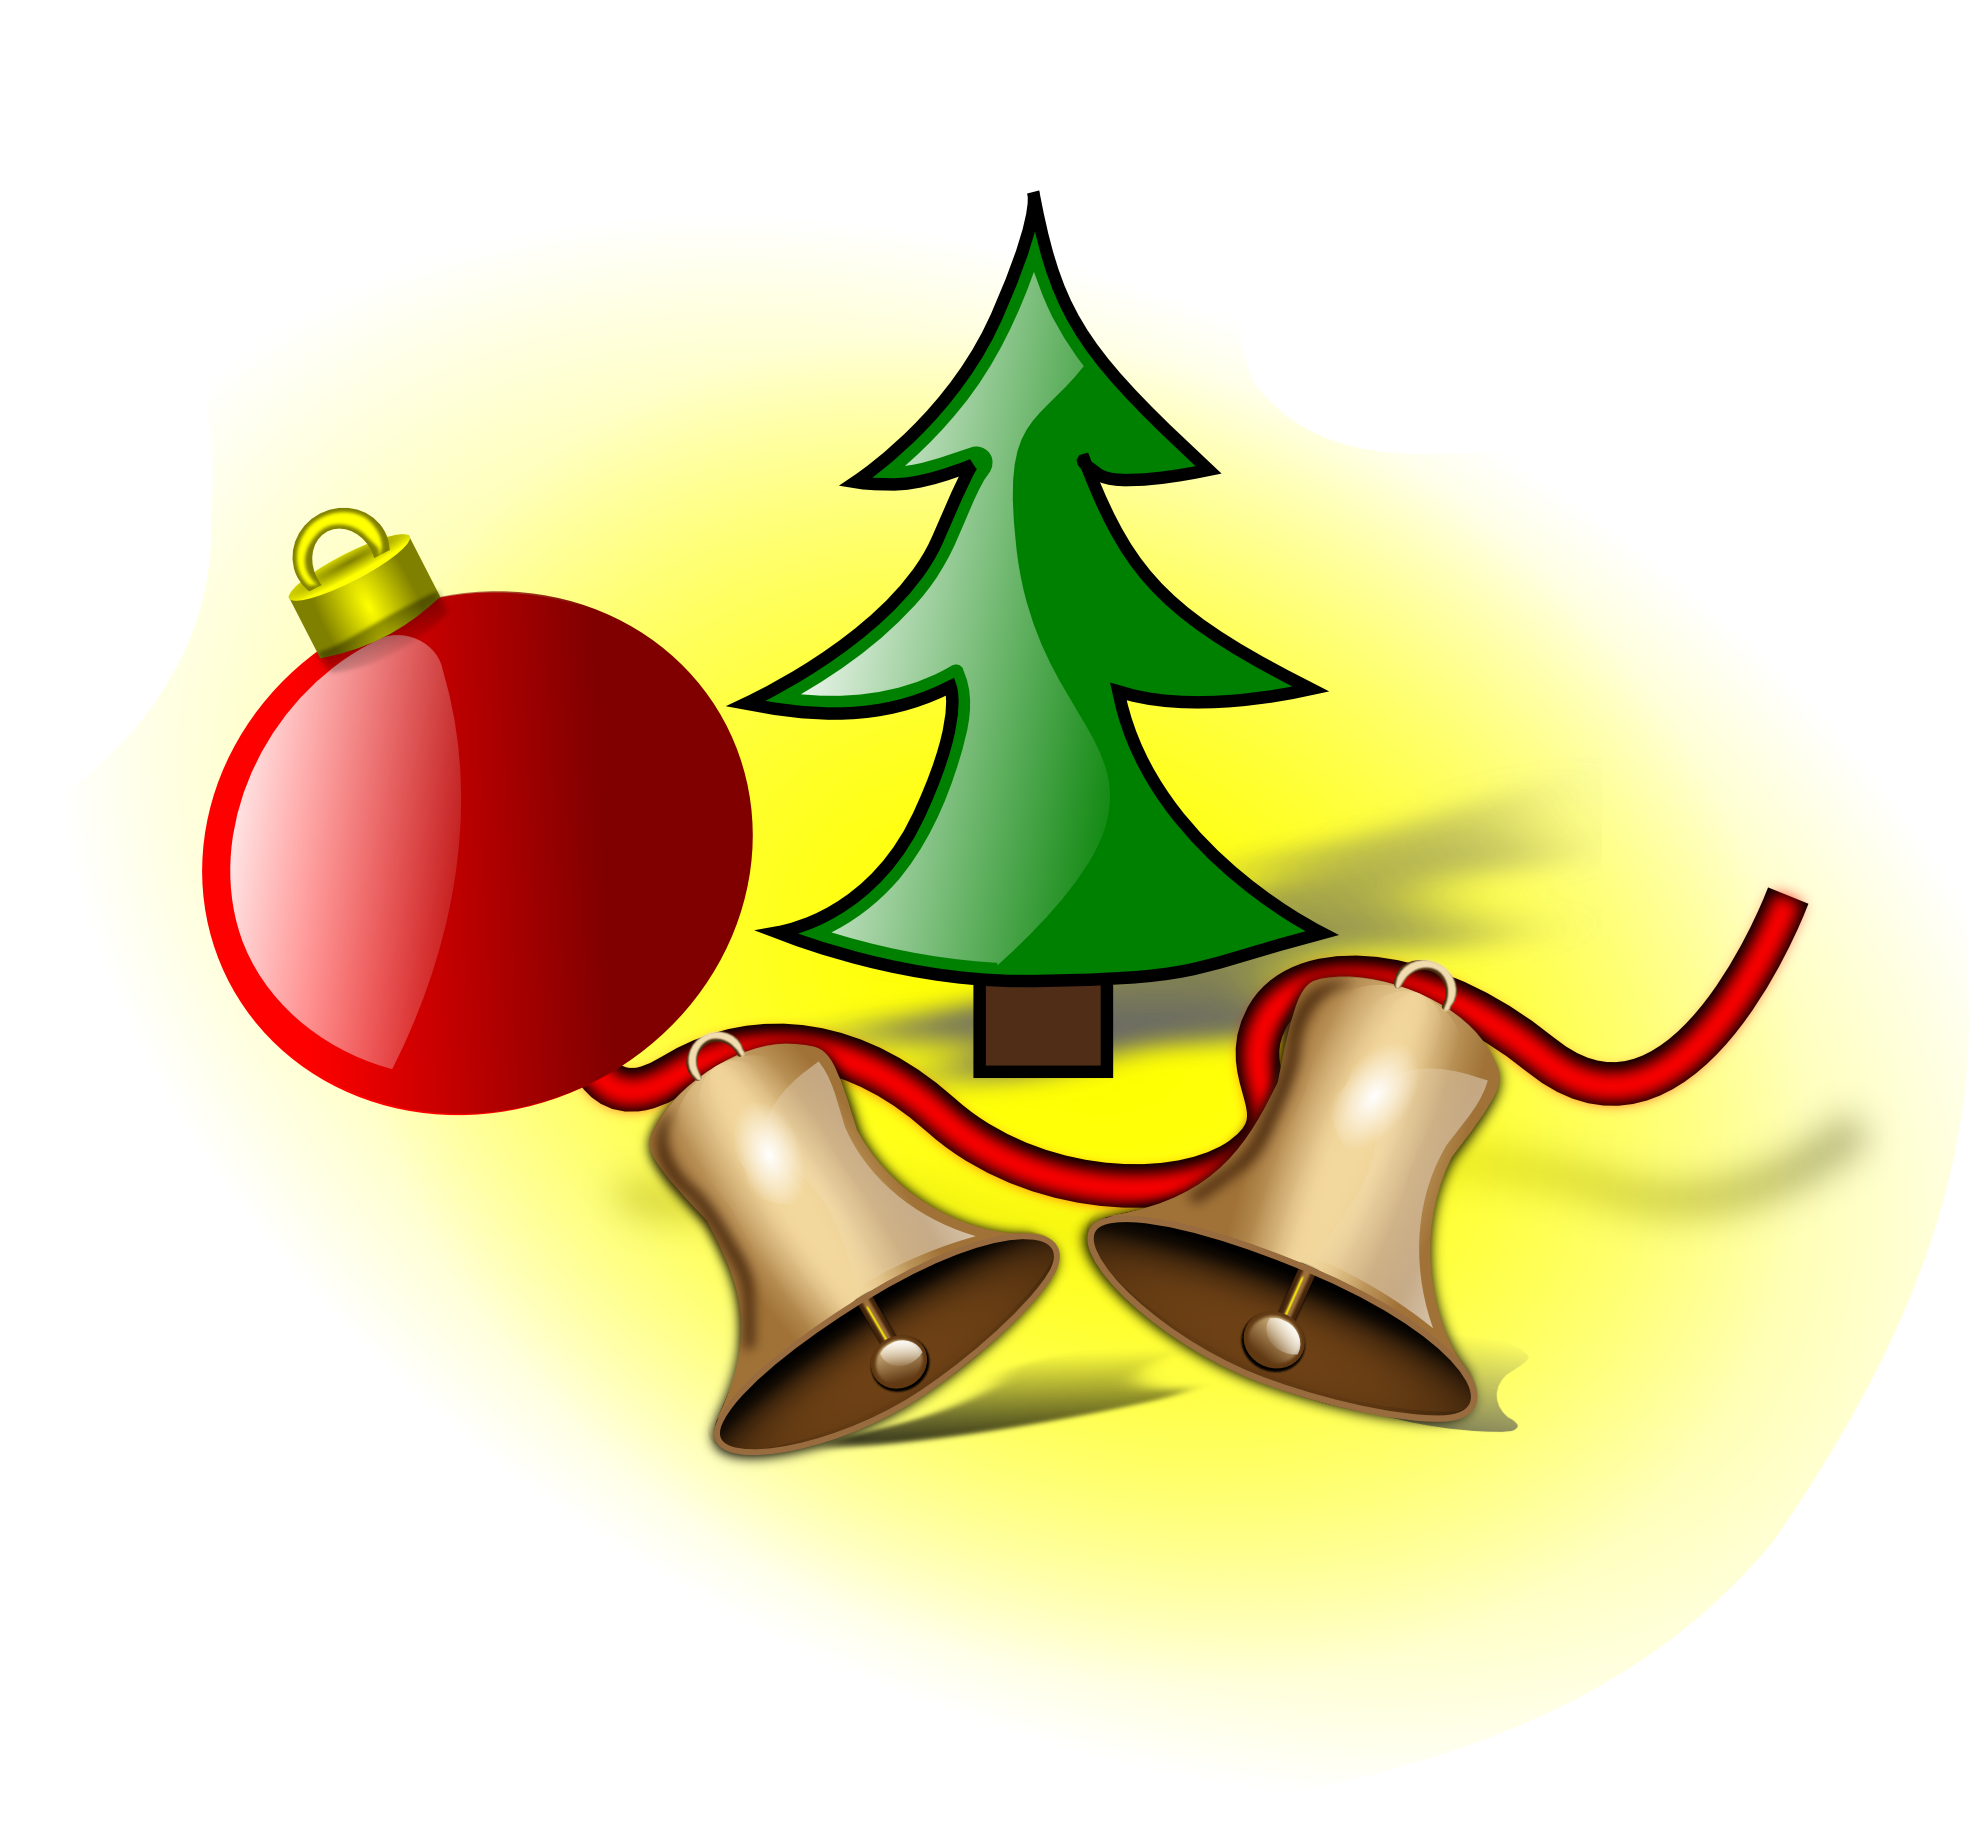 Jingle clipart small. Free bells images download